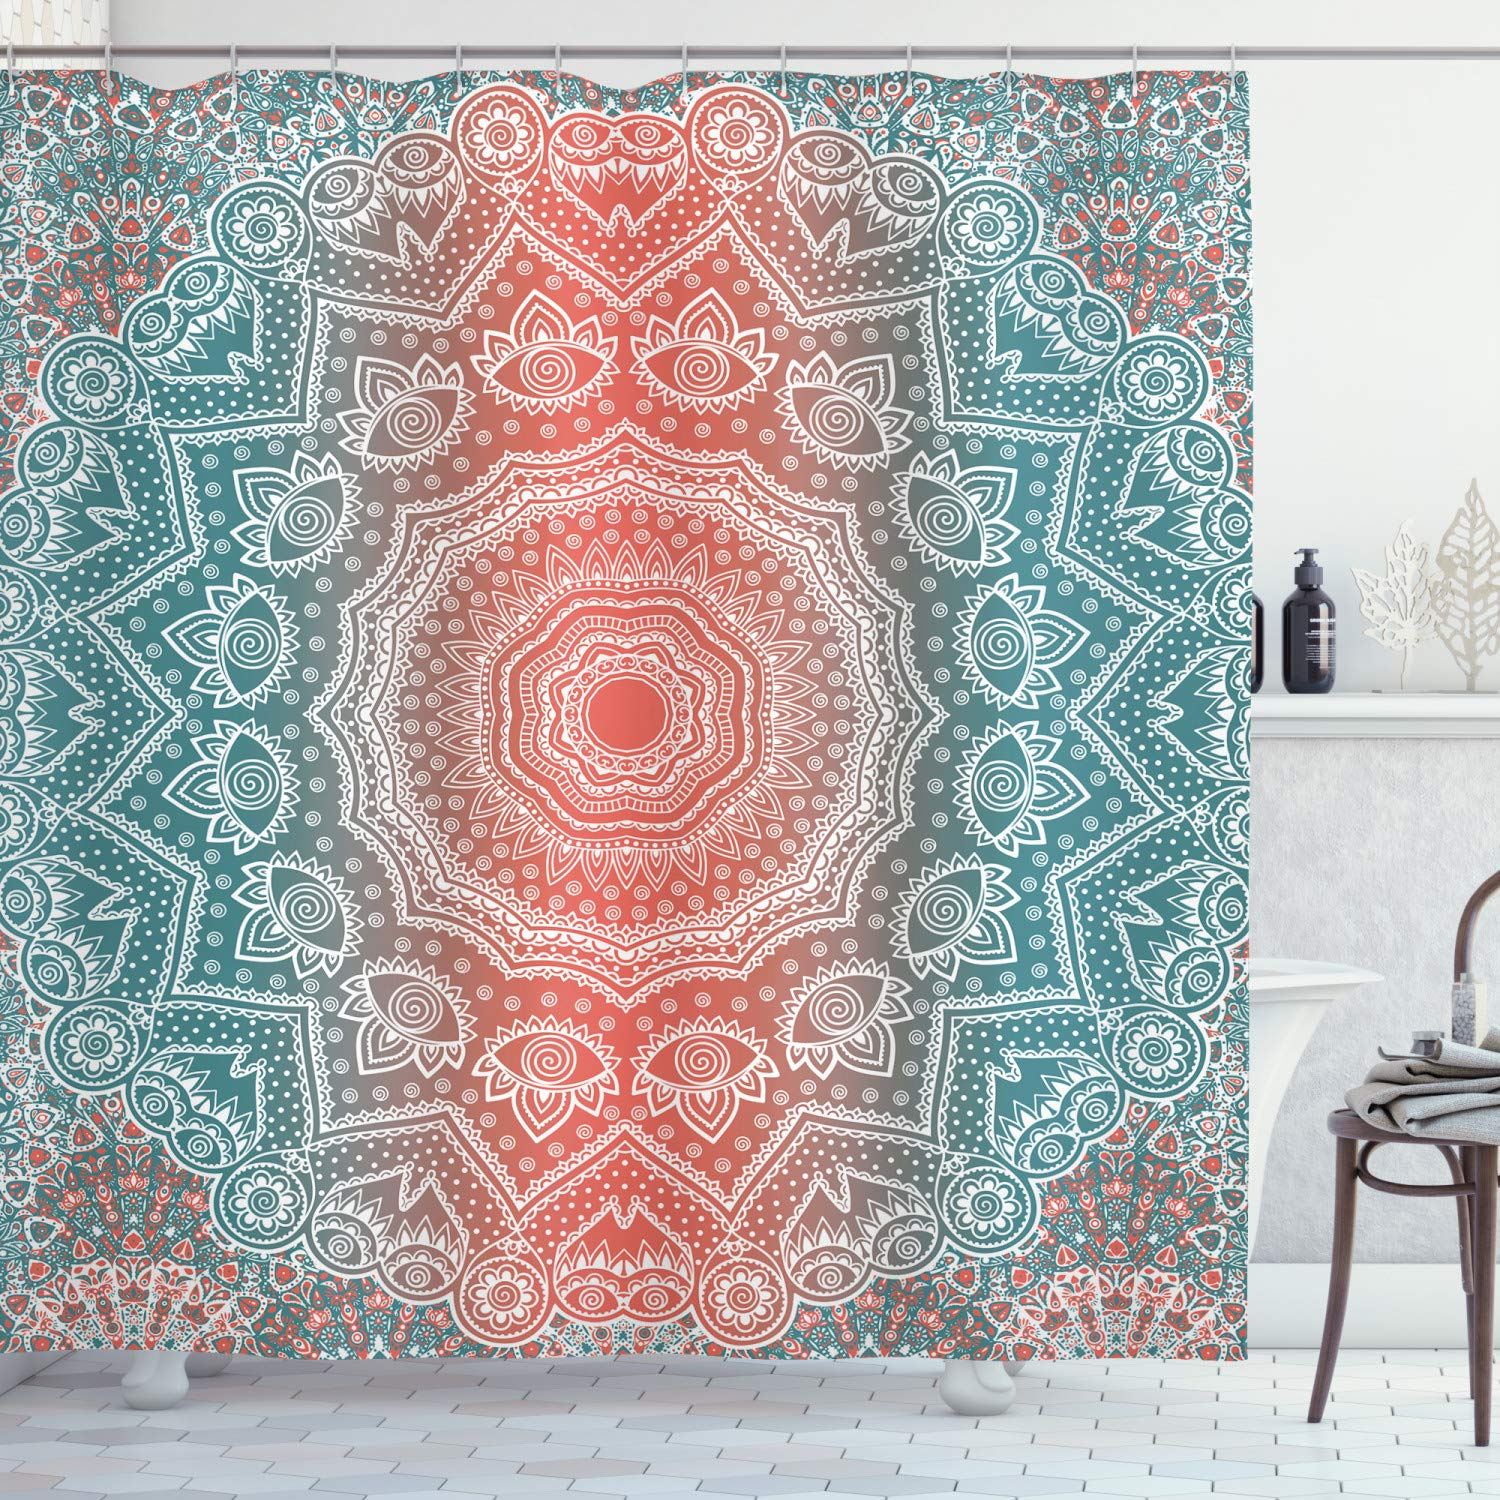 """Ambesonne Coral and Teal Shower Curtain, Modern Tribal Mandala Tibetan Healing Motif with Floral Geometric Ombre Art, Cloth Fabric Bathroom Decor Set with Hooks, 70"""" Long, Coral Teal"""